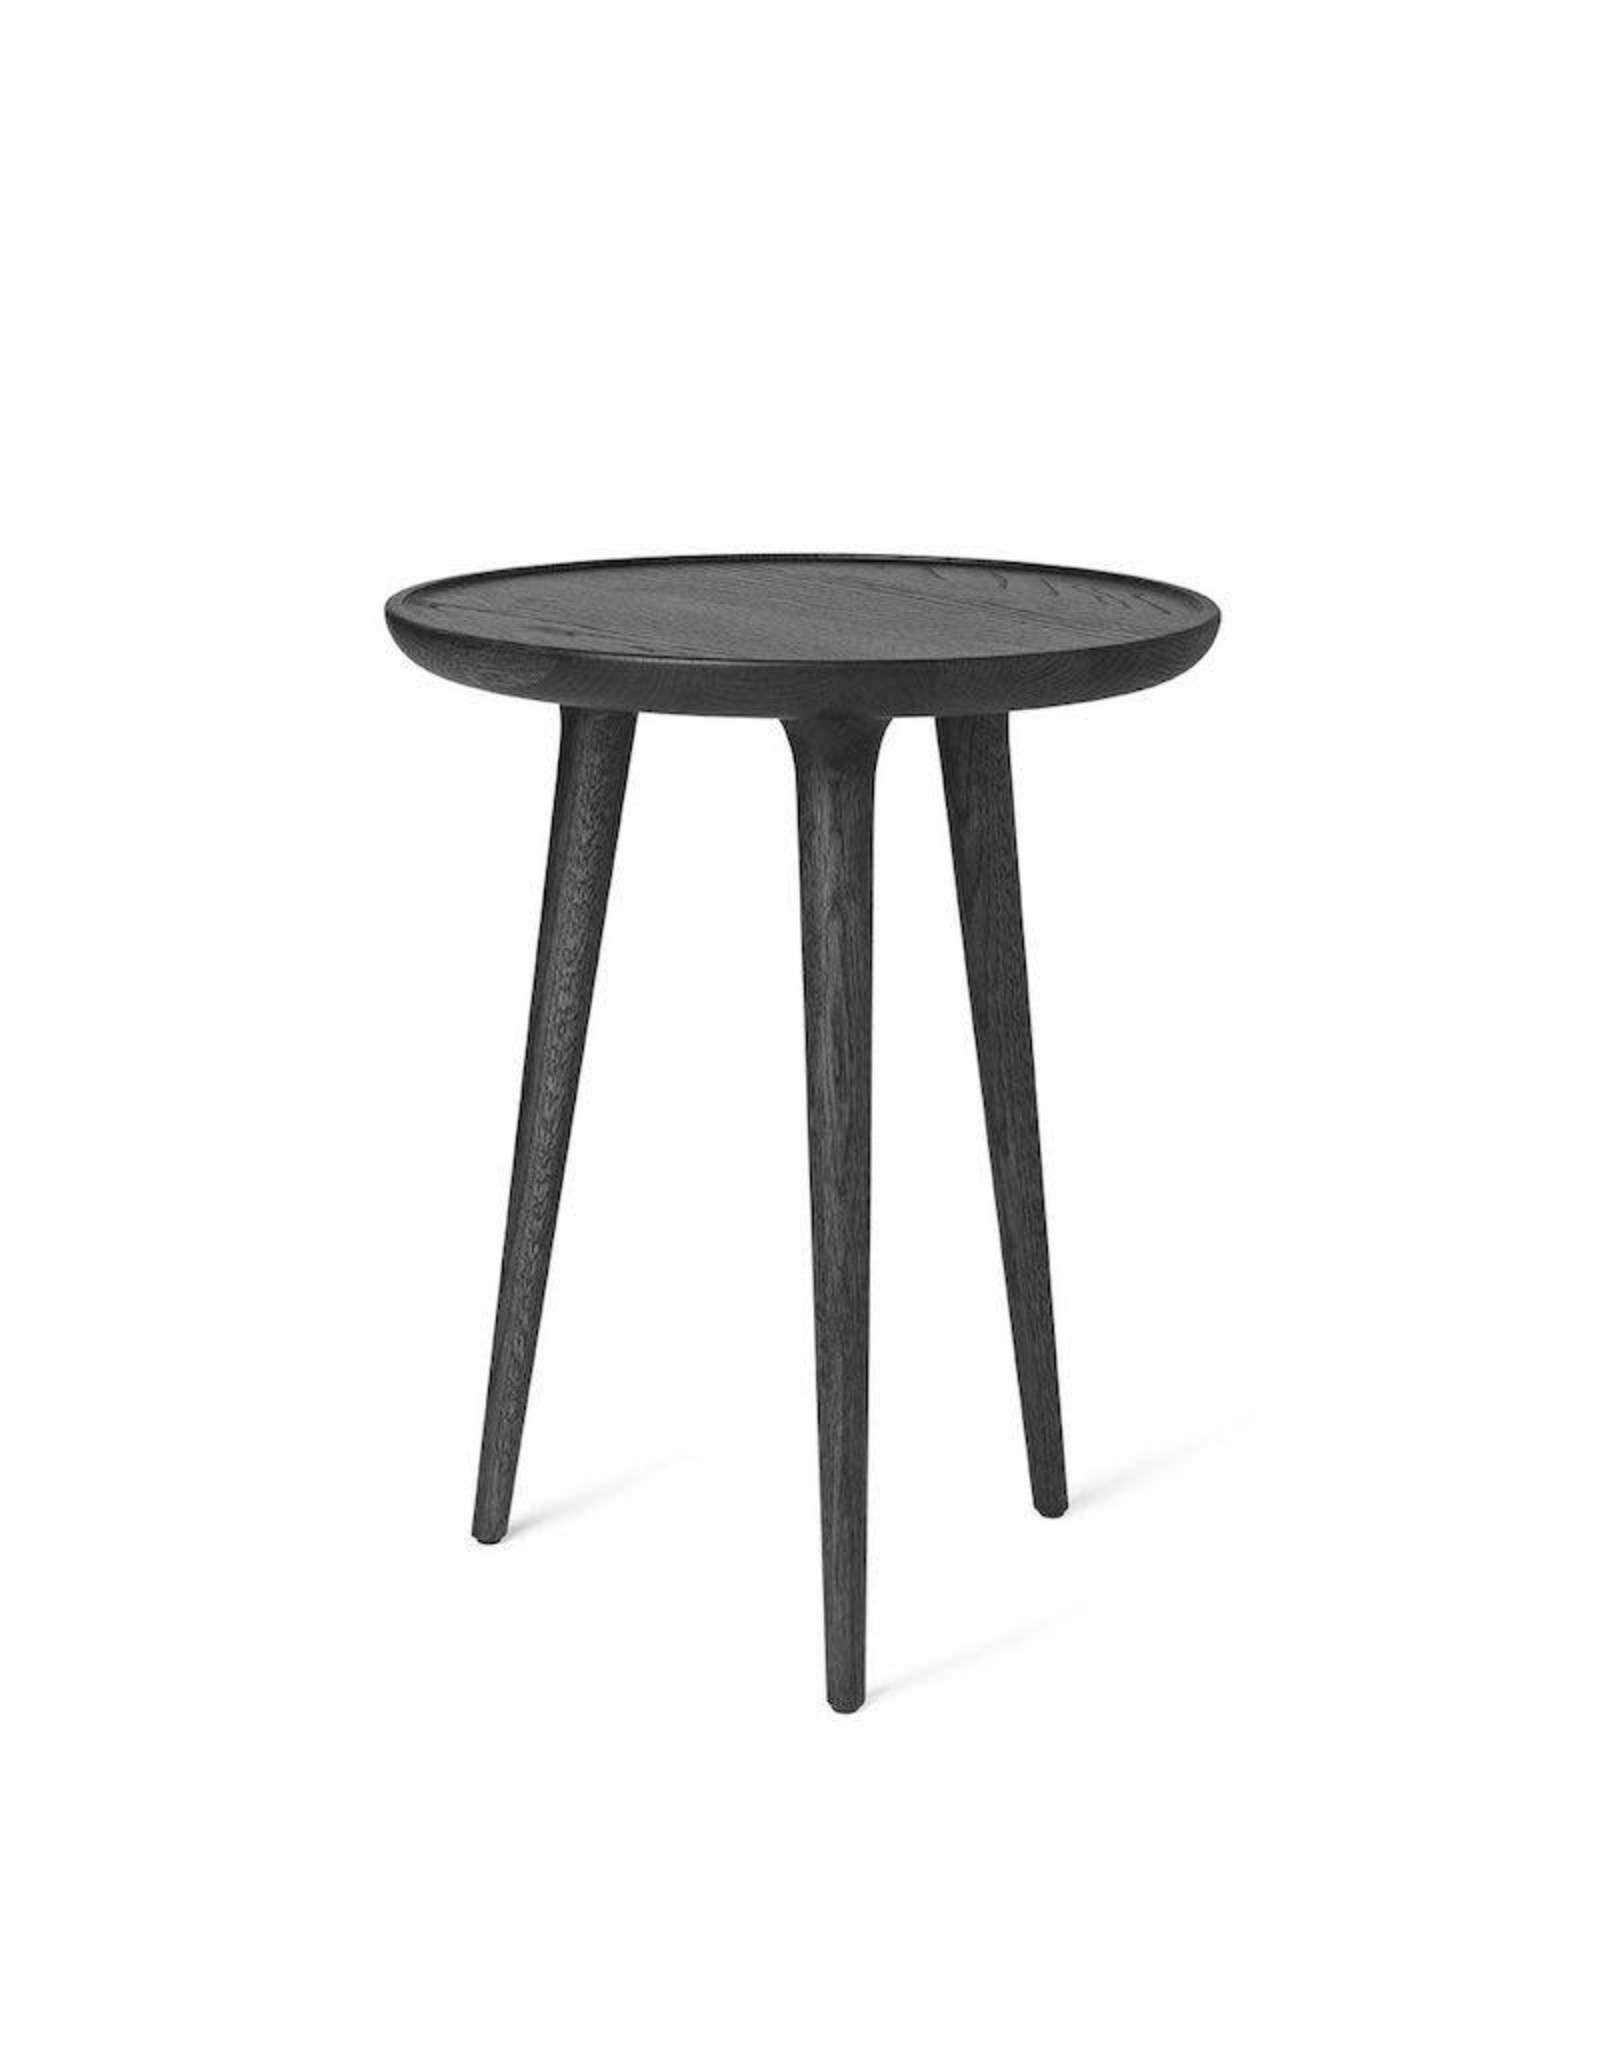 MATER ACCENT SIDE TABLE IN SIRKA GREY